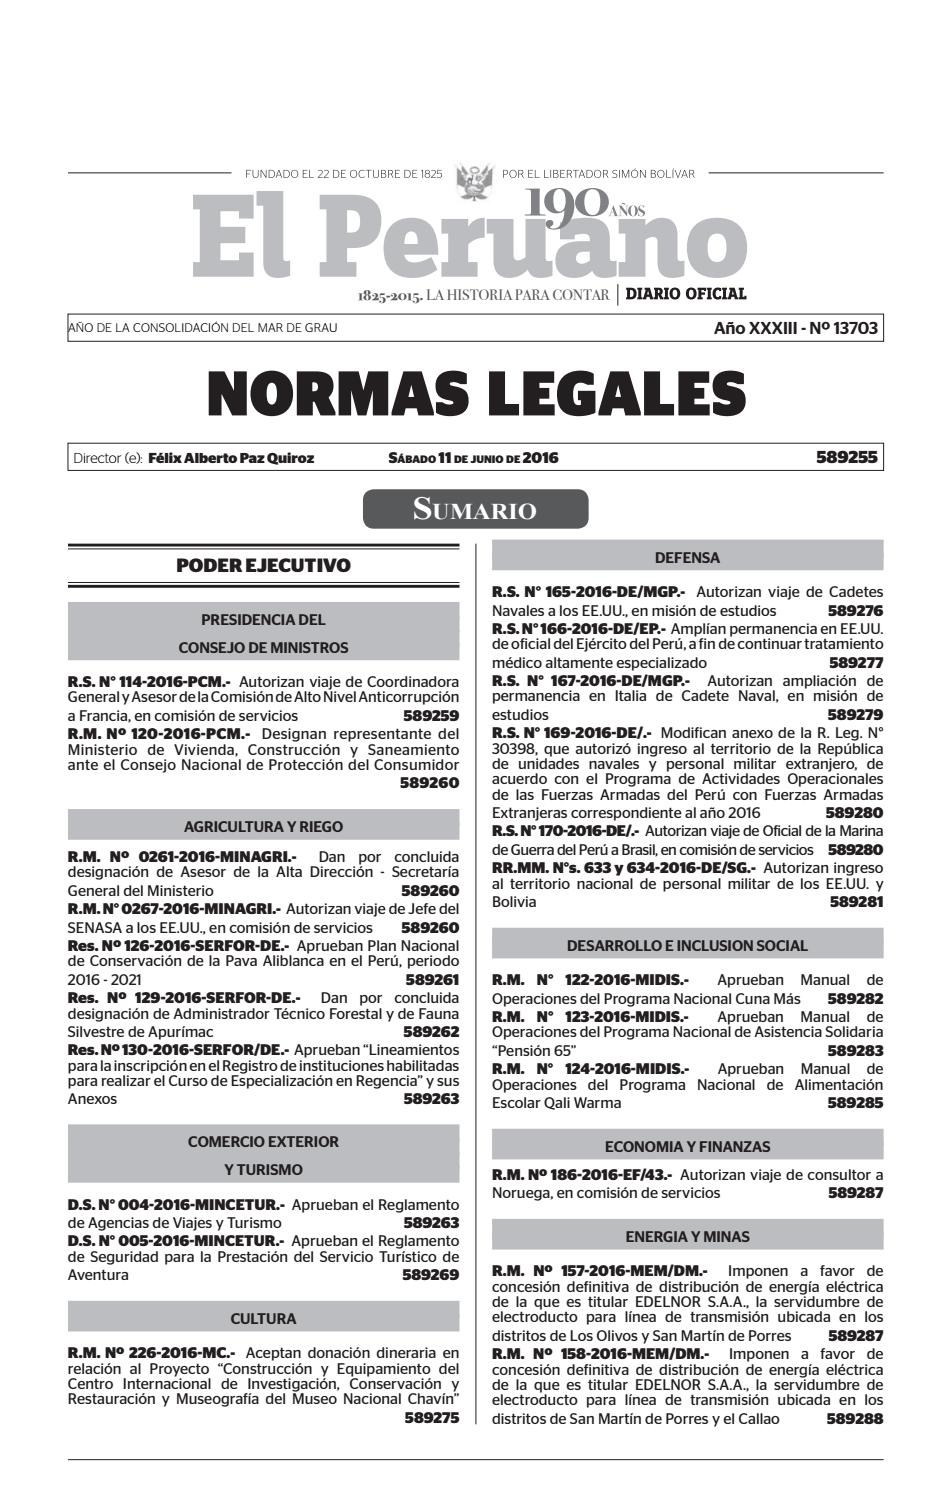 Normas Legales 11 06 2016 by Gaceta Juridica - issuu